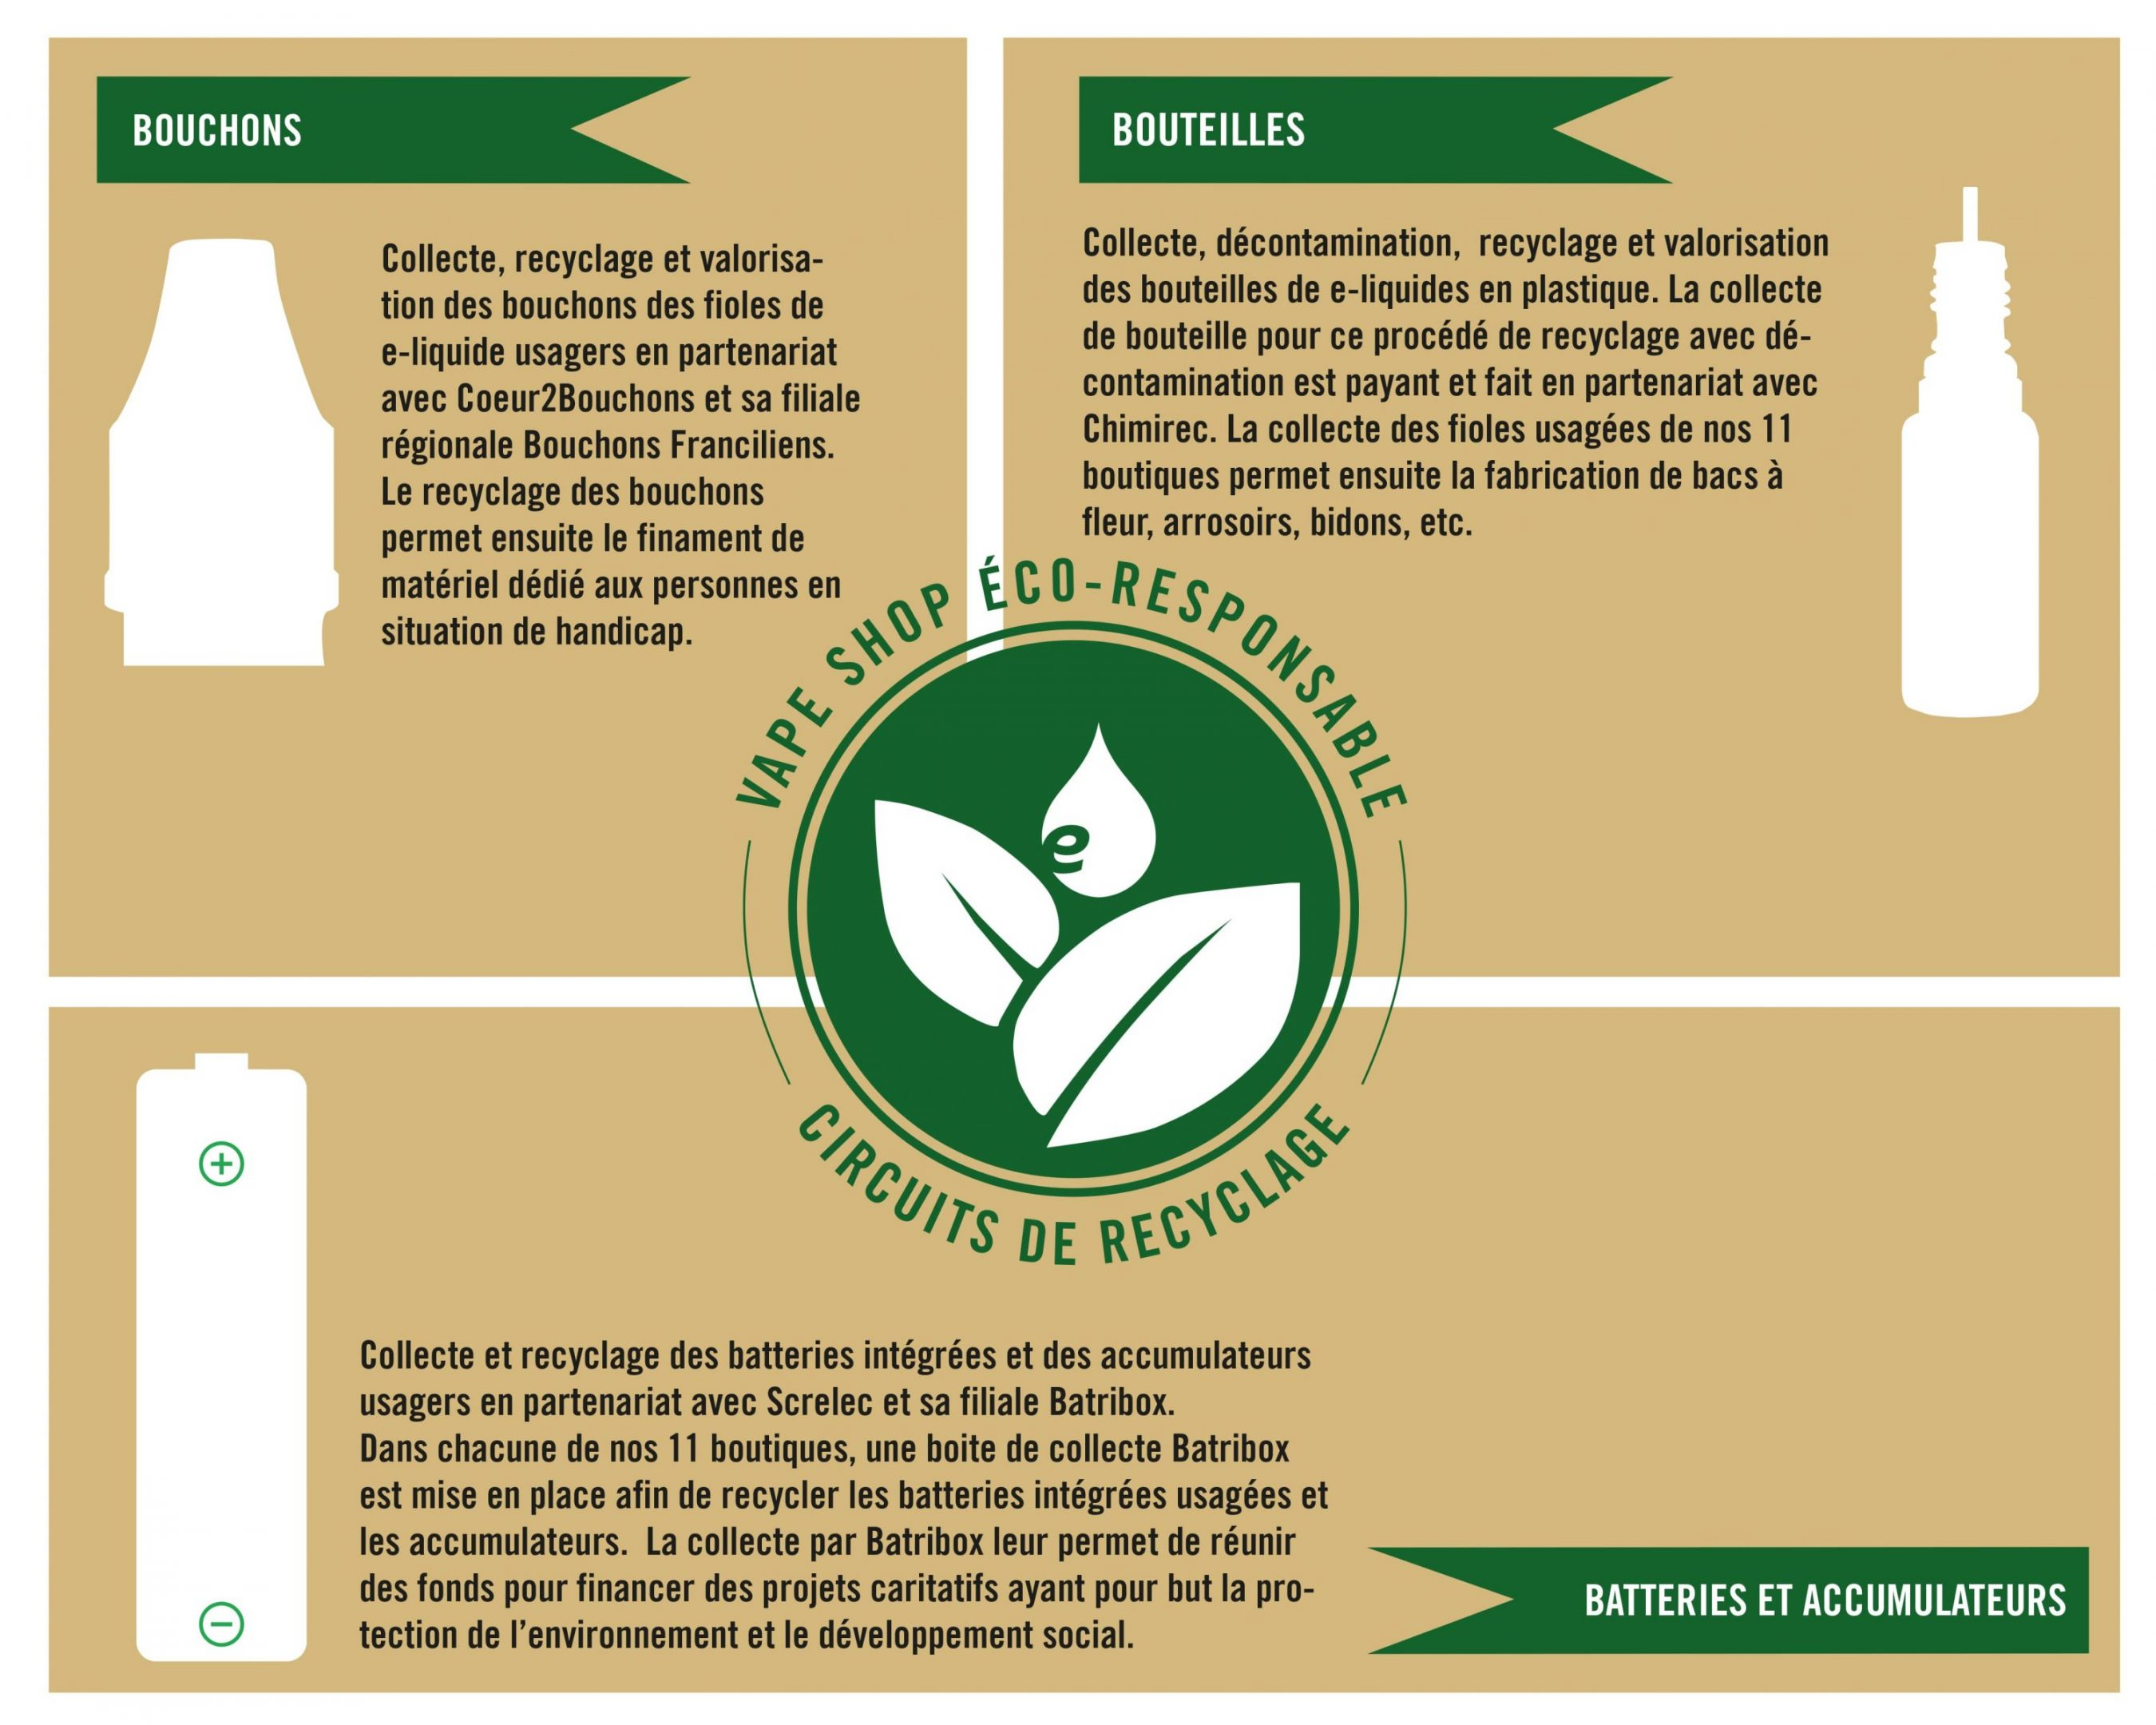 INFOGRAPHIE RECYCLAGE 2